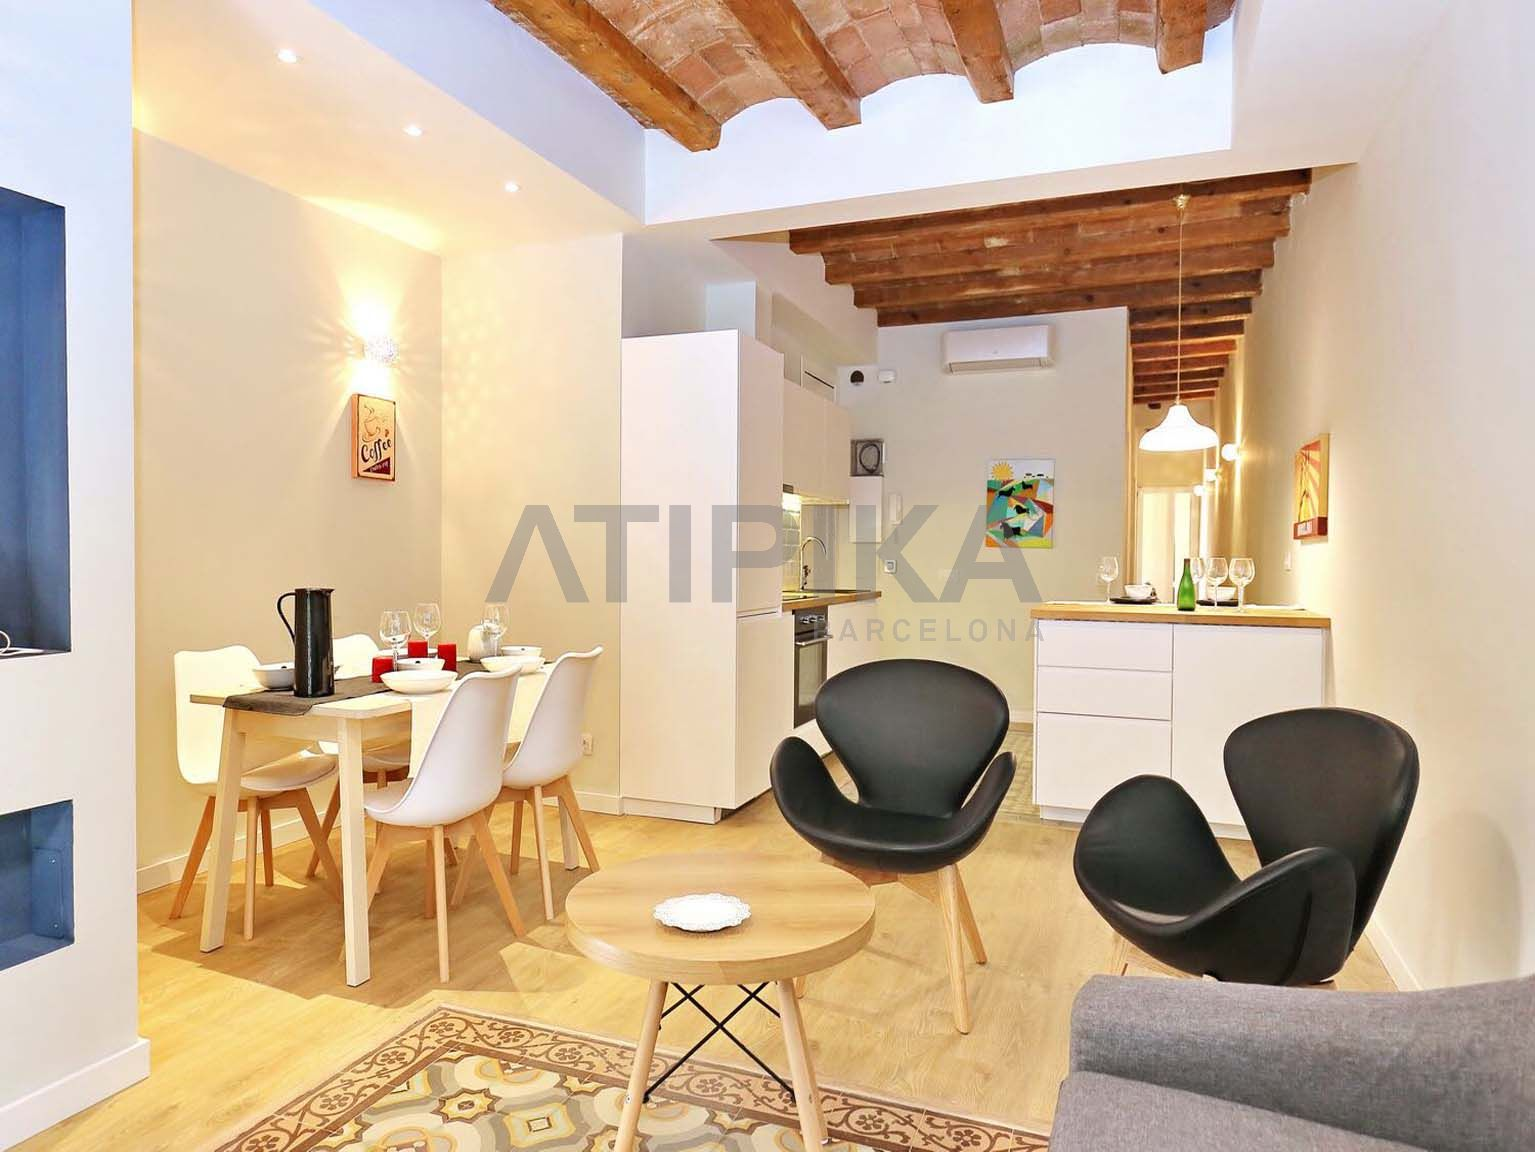 Fully refurbished apartment with furniture close to Plaça d'Espanya